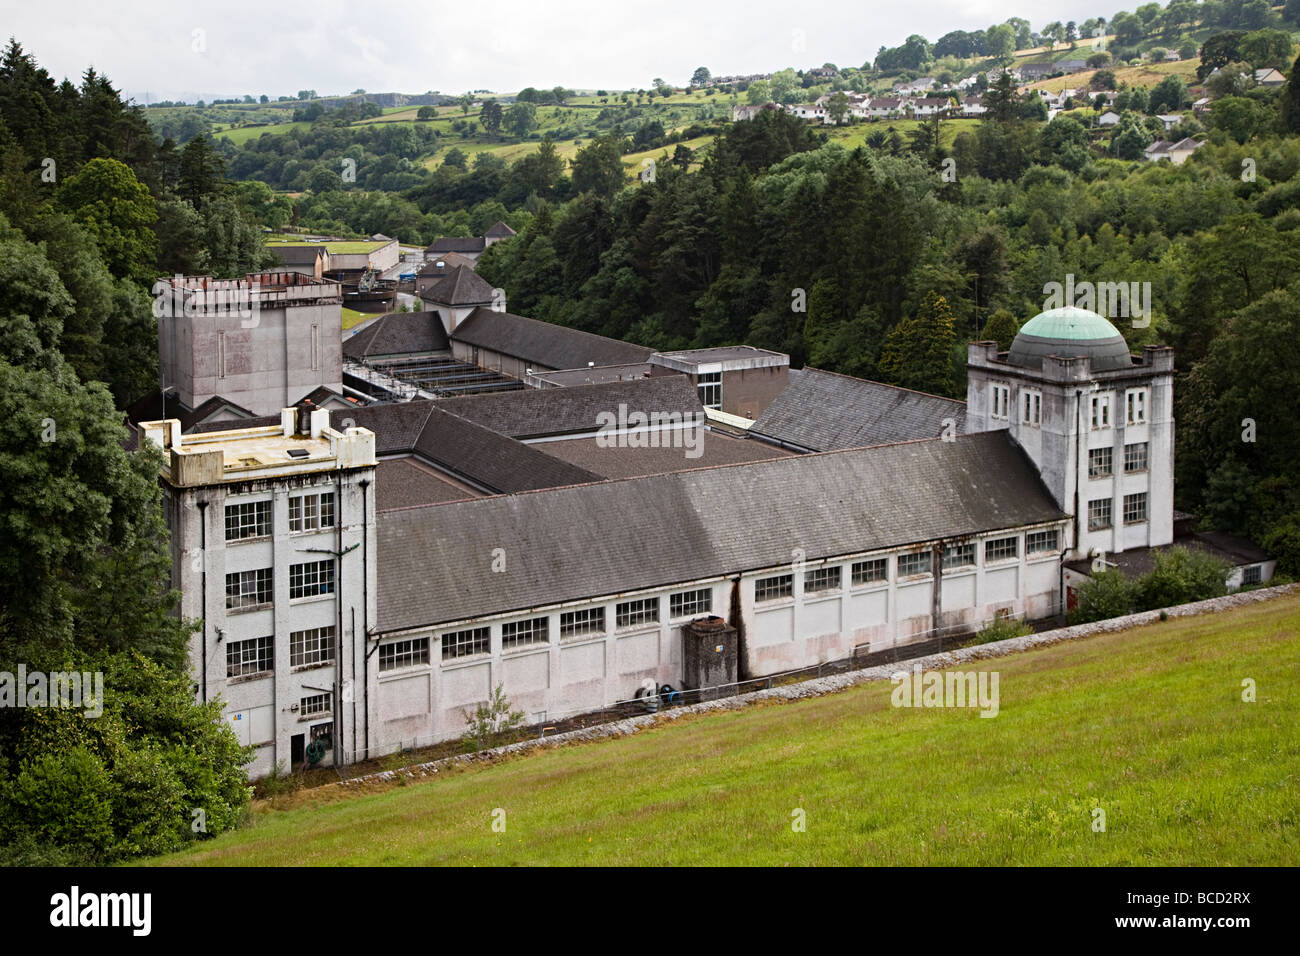 Water works pumping treatment station Pontsticill reservoir Brecon Beacons national park Wales UK - Stock Image